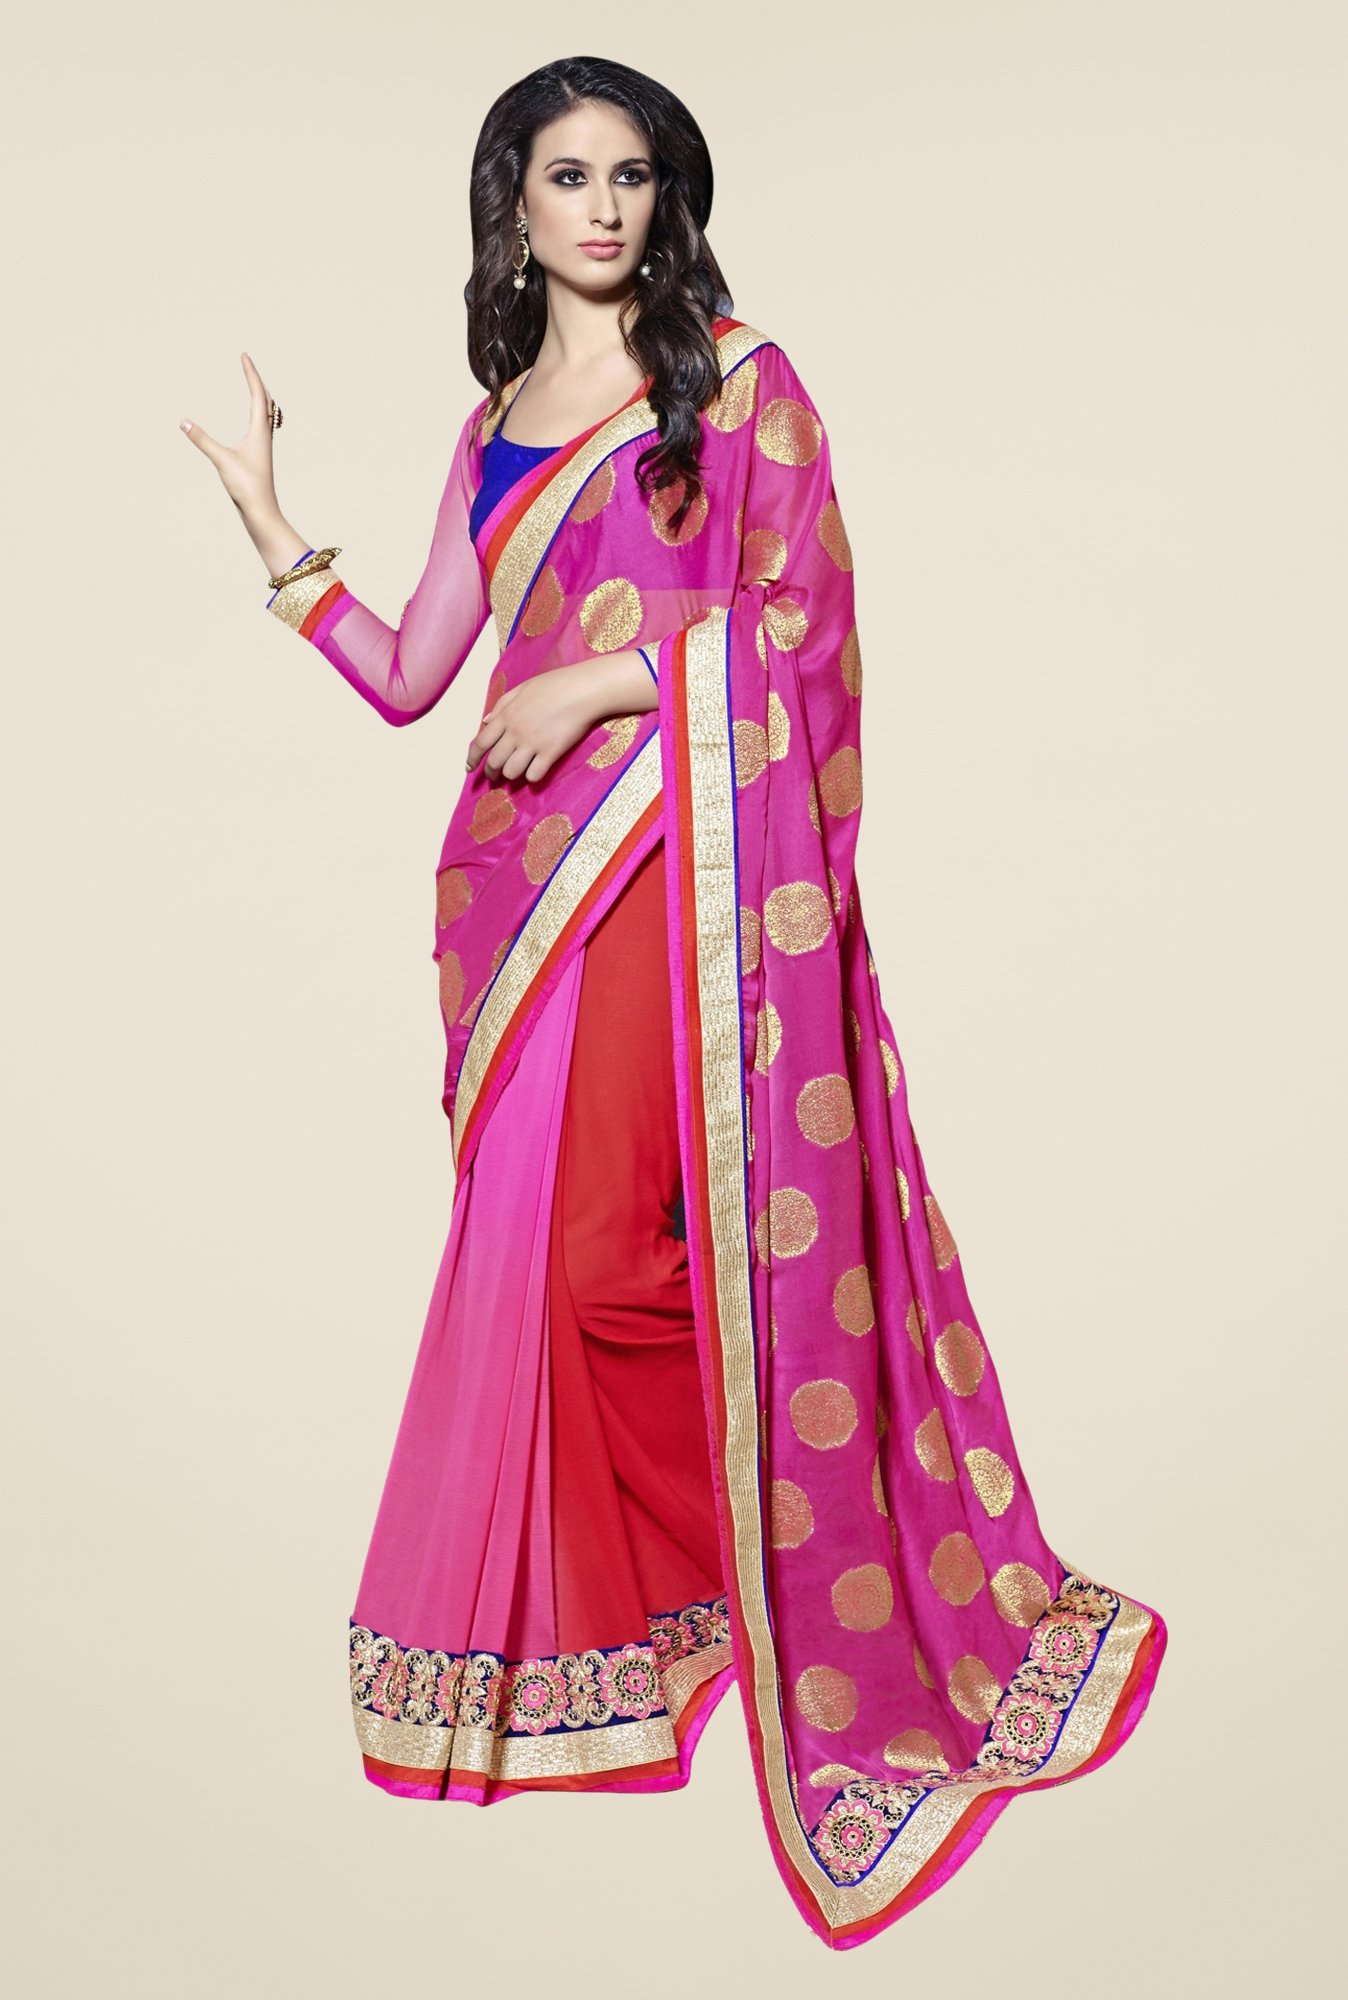 Triveni Pink & Red Printed Chiffon Saree